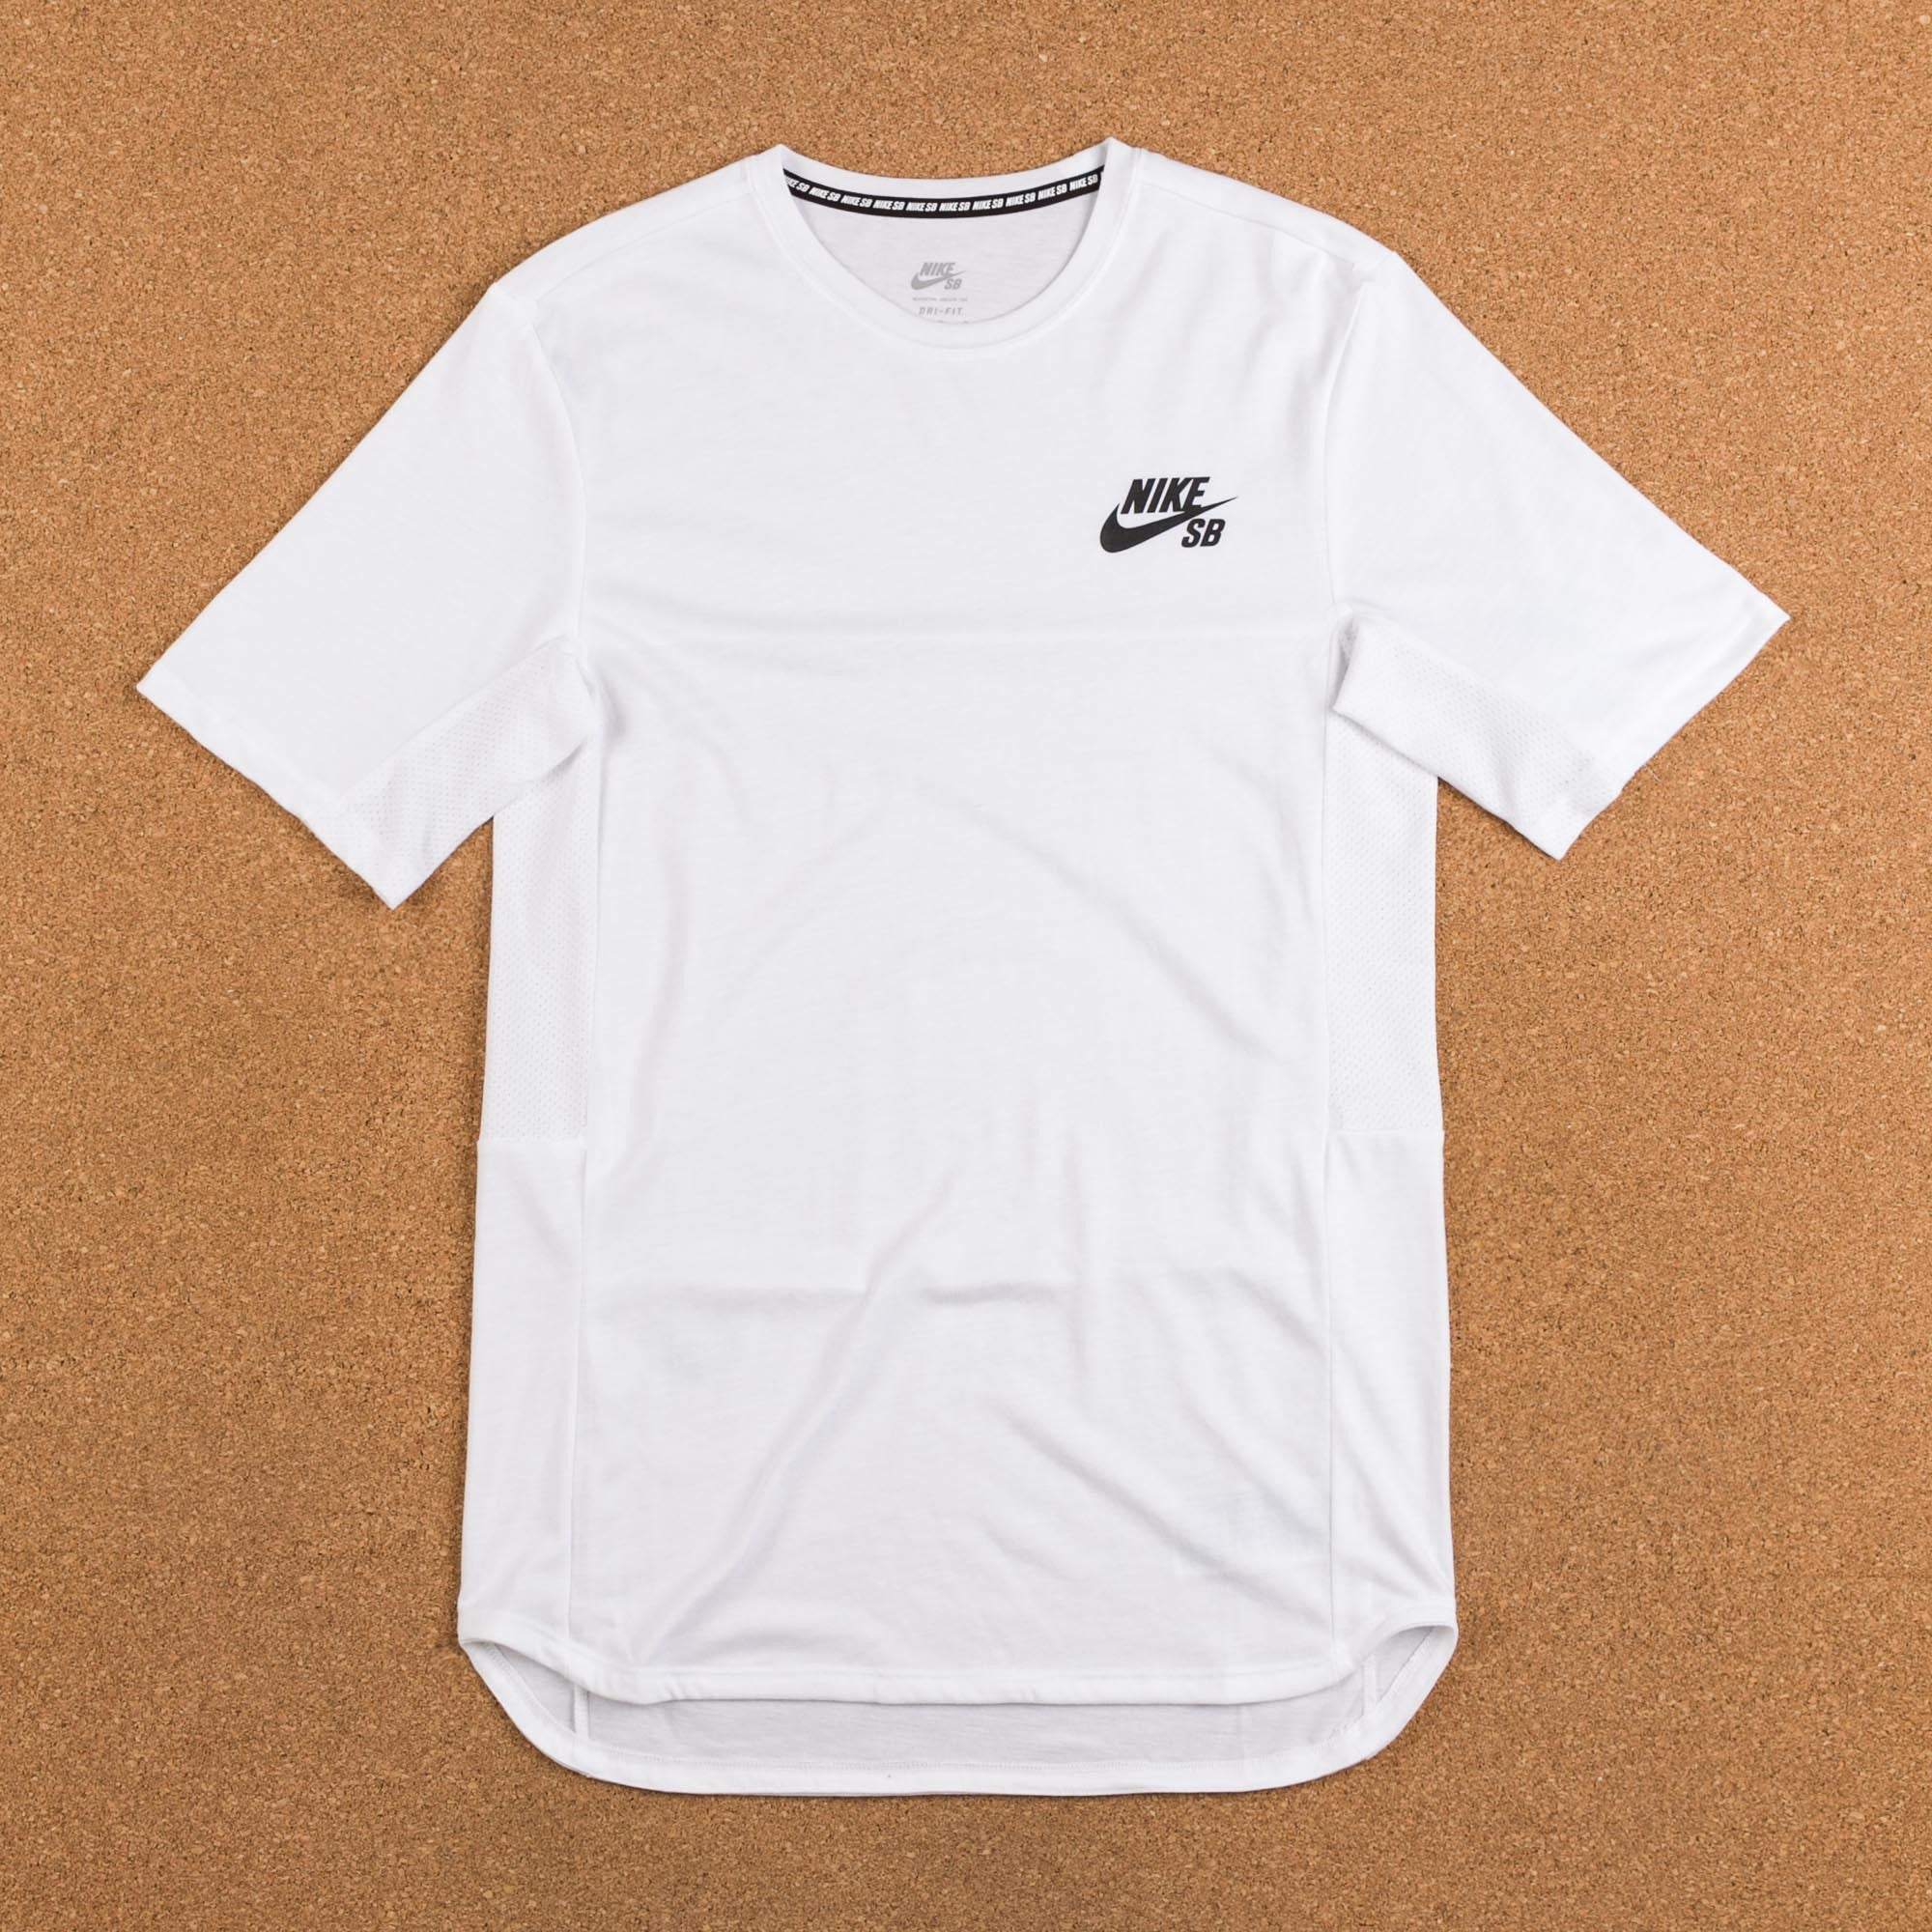 Nike SB Dry T-Shirt - White / Black